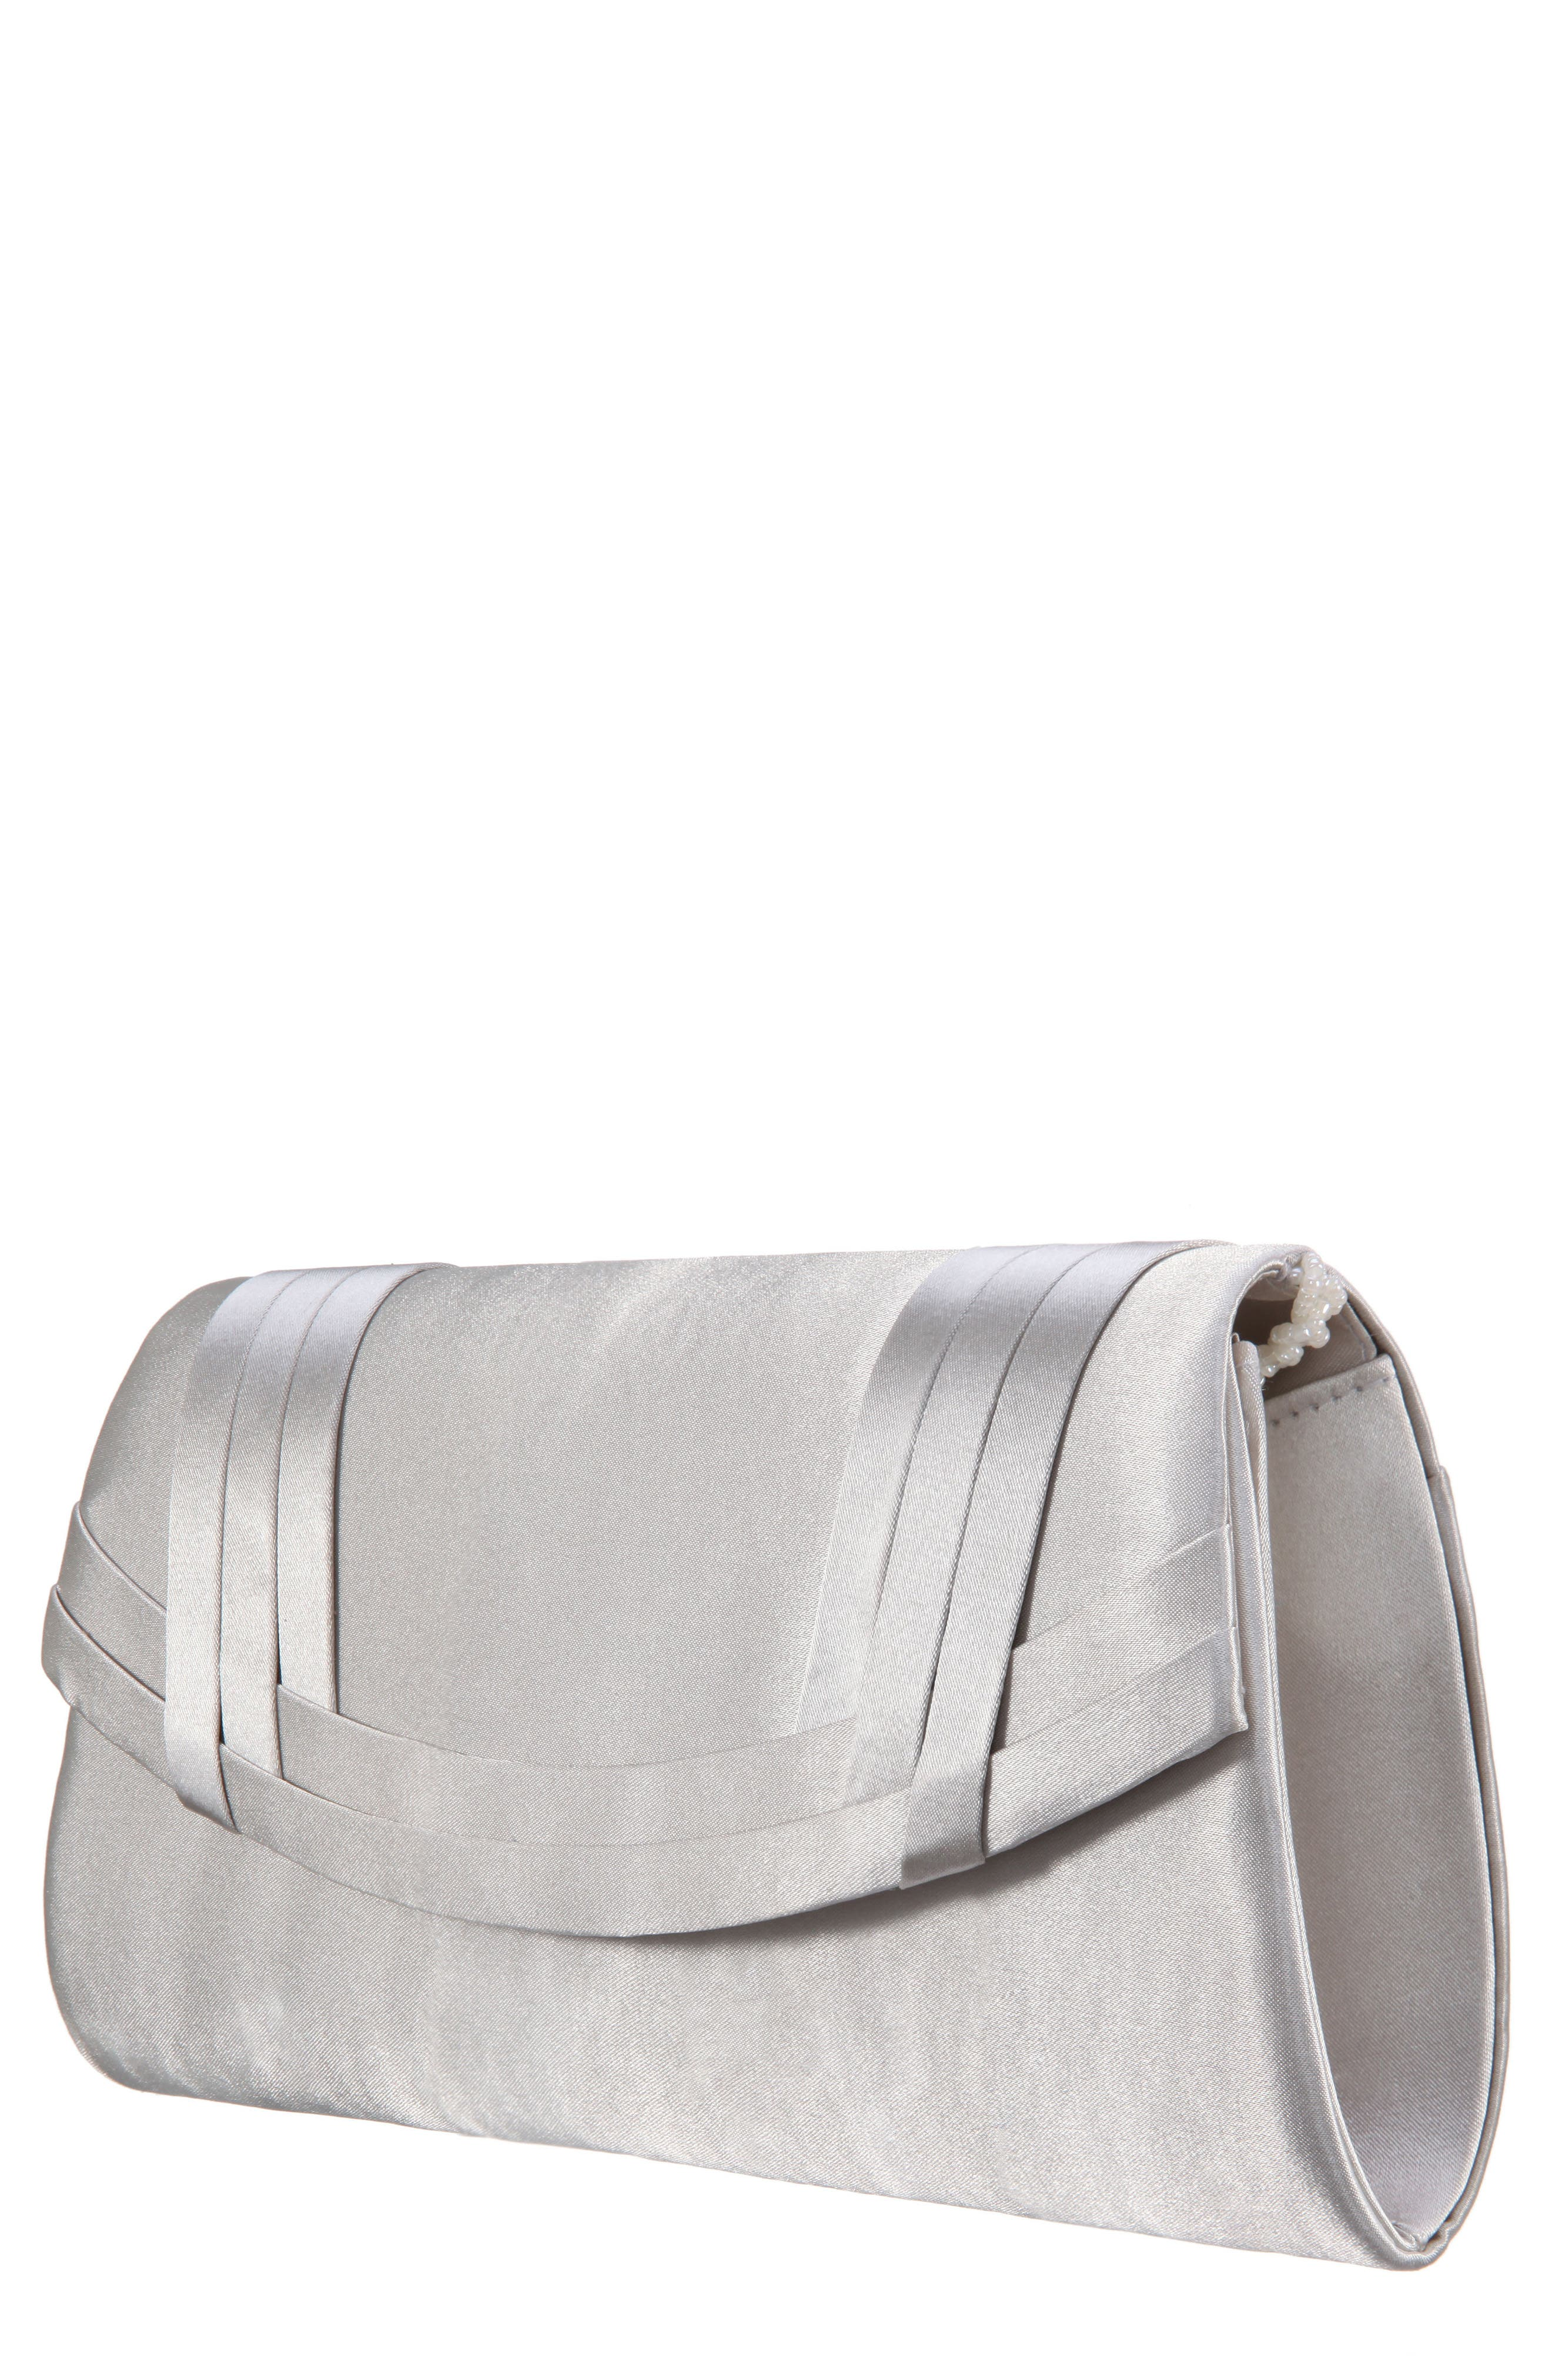 Avis Pleated Classic Clutch,                         Main,                         color, Oyster